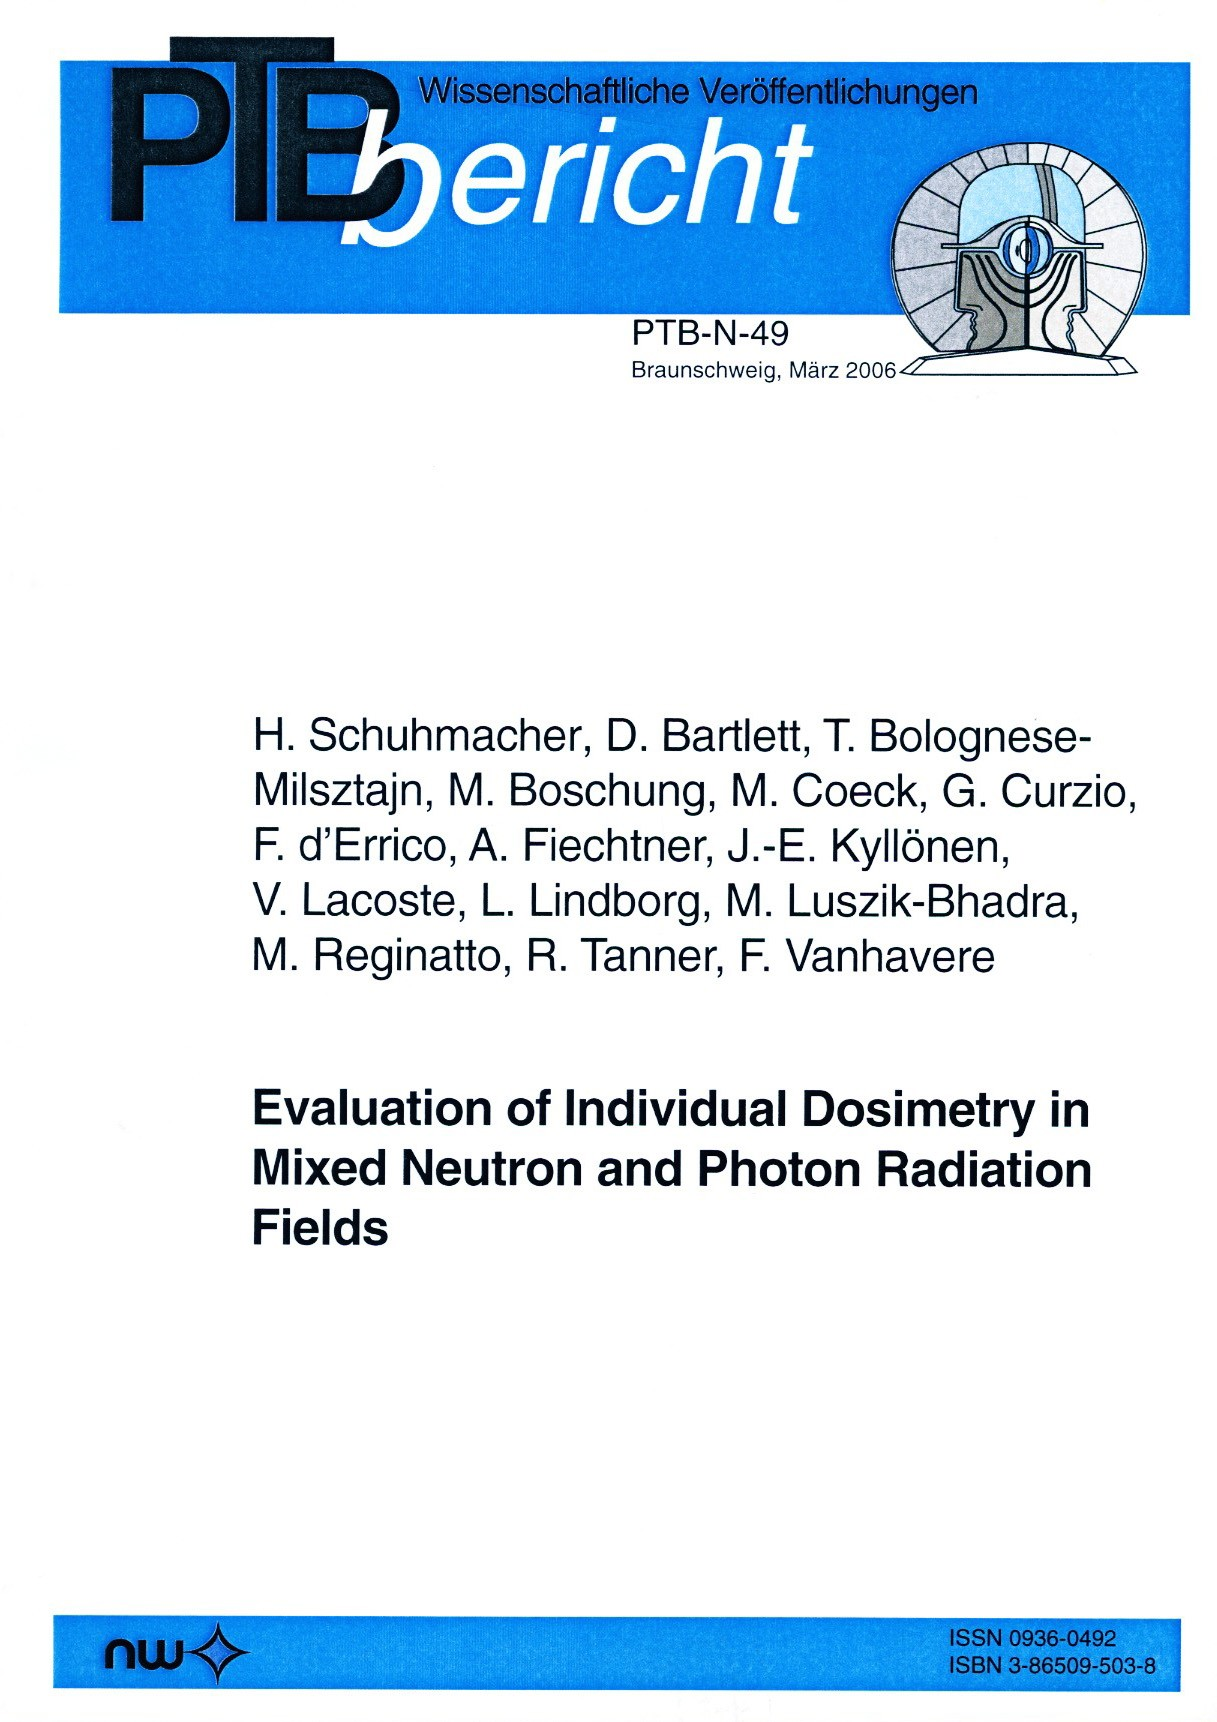 Evaluation of Individual Dosimetry in Mixed Neutron and Photon Radiation Fields